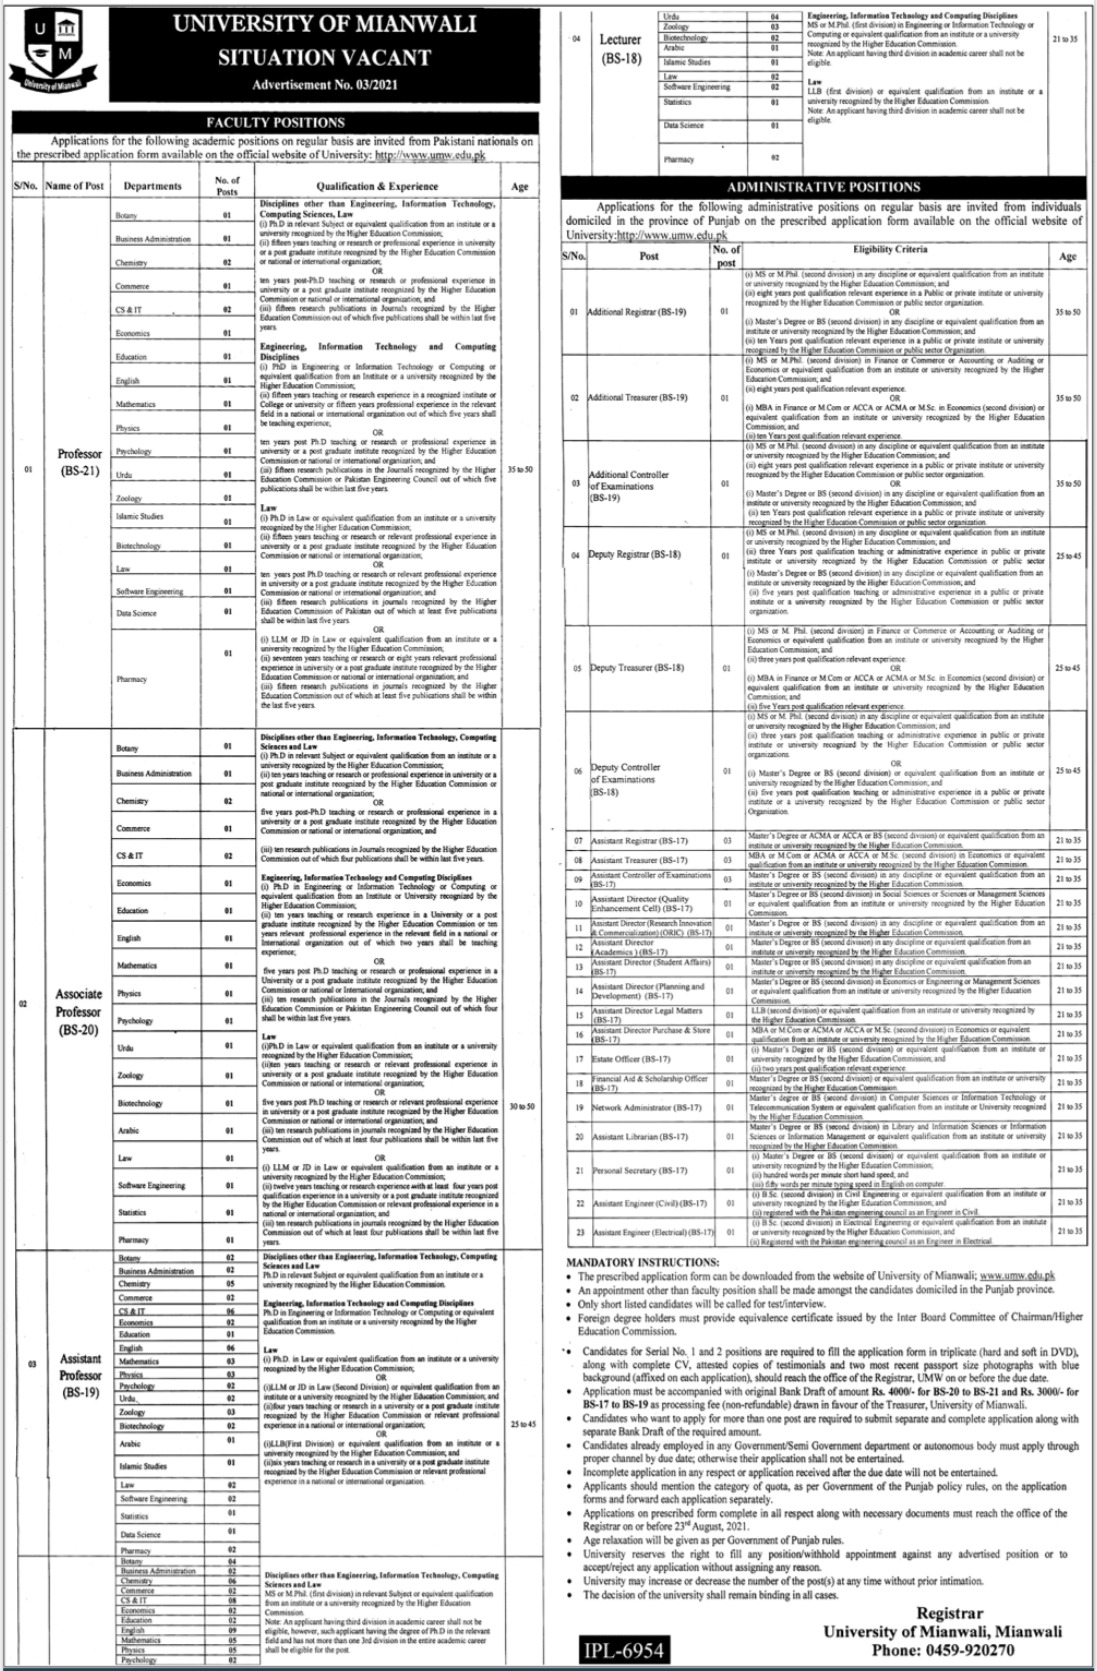 University of Mianwali Faculty & Administrative Staff Jobs 2021